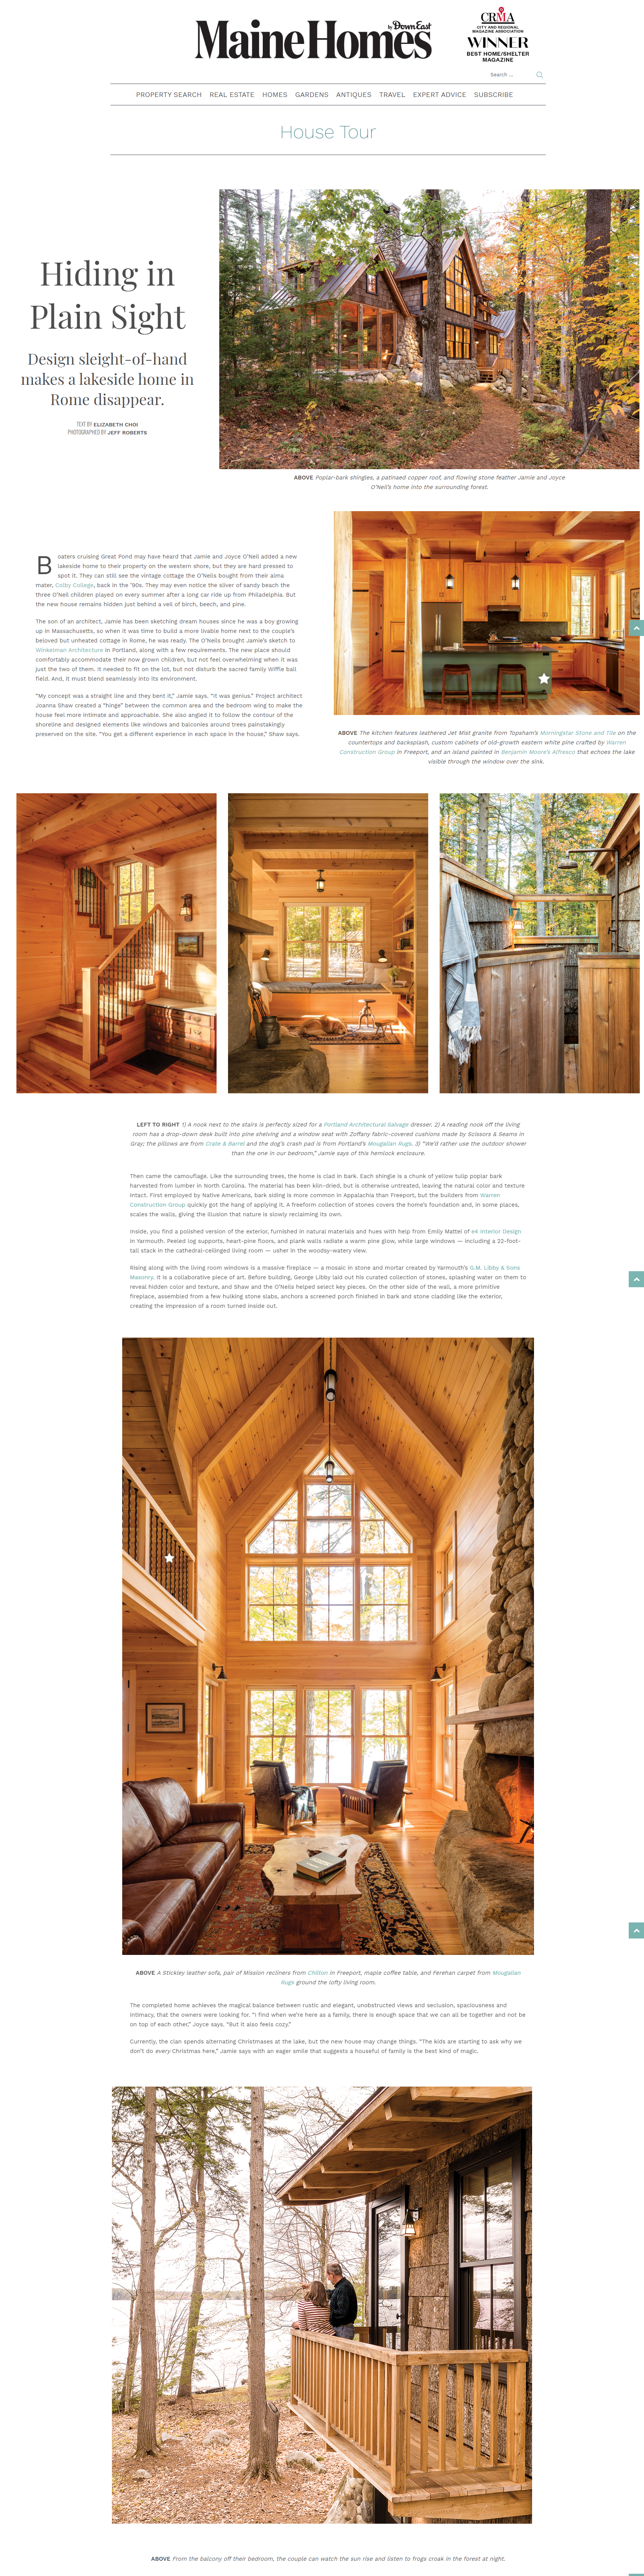 DownEast Magazine Rome House Article